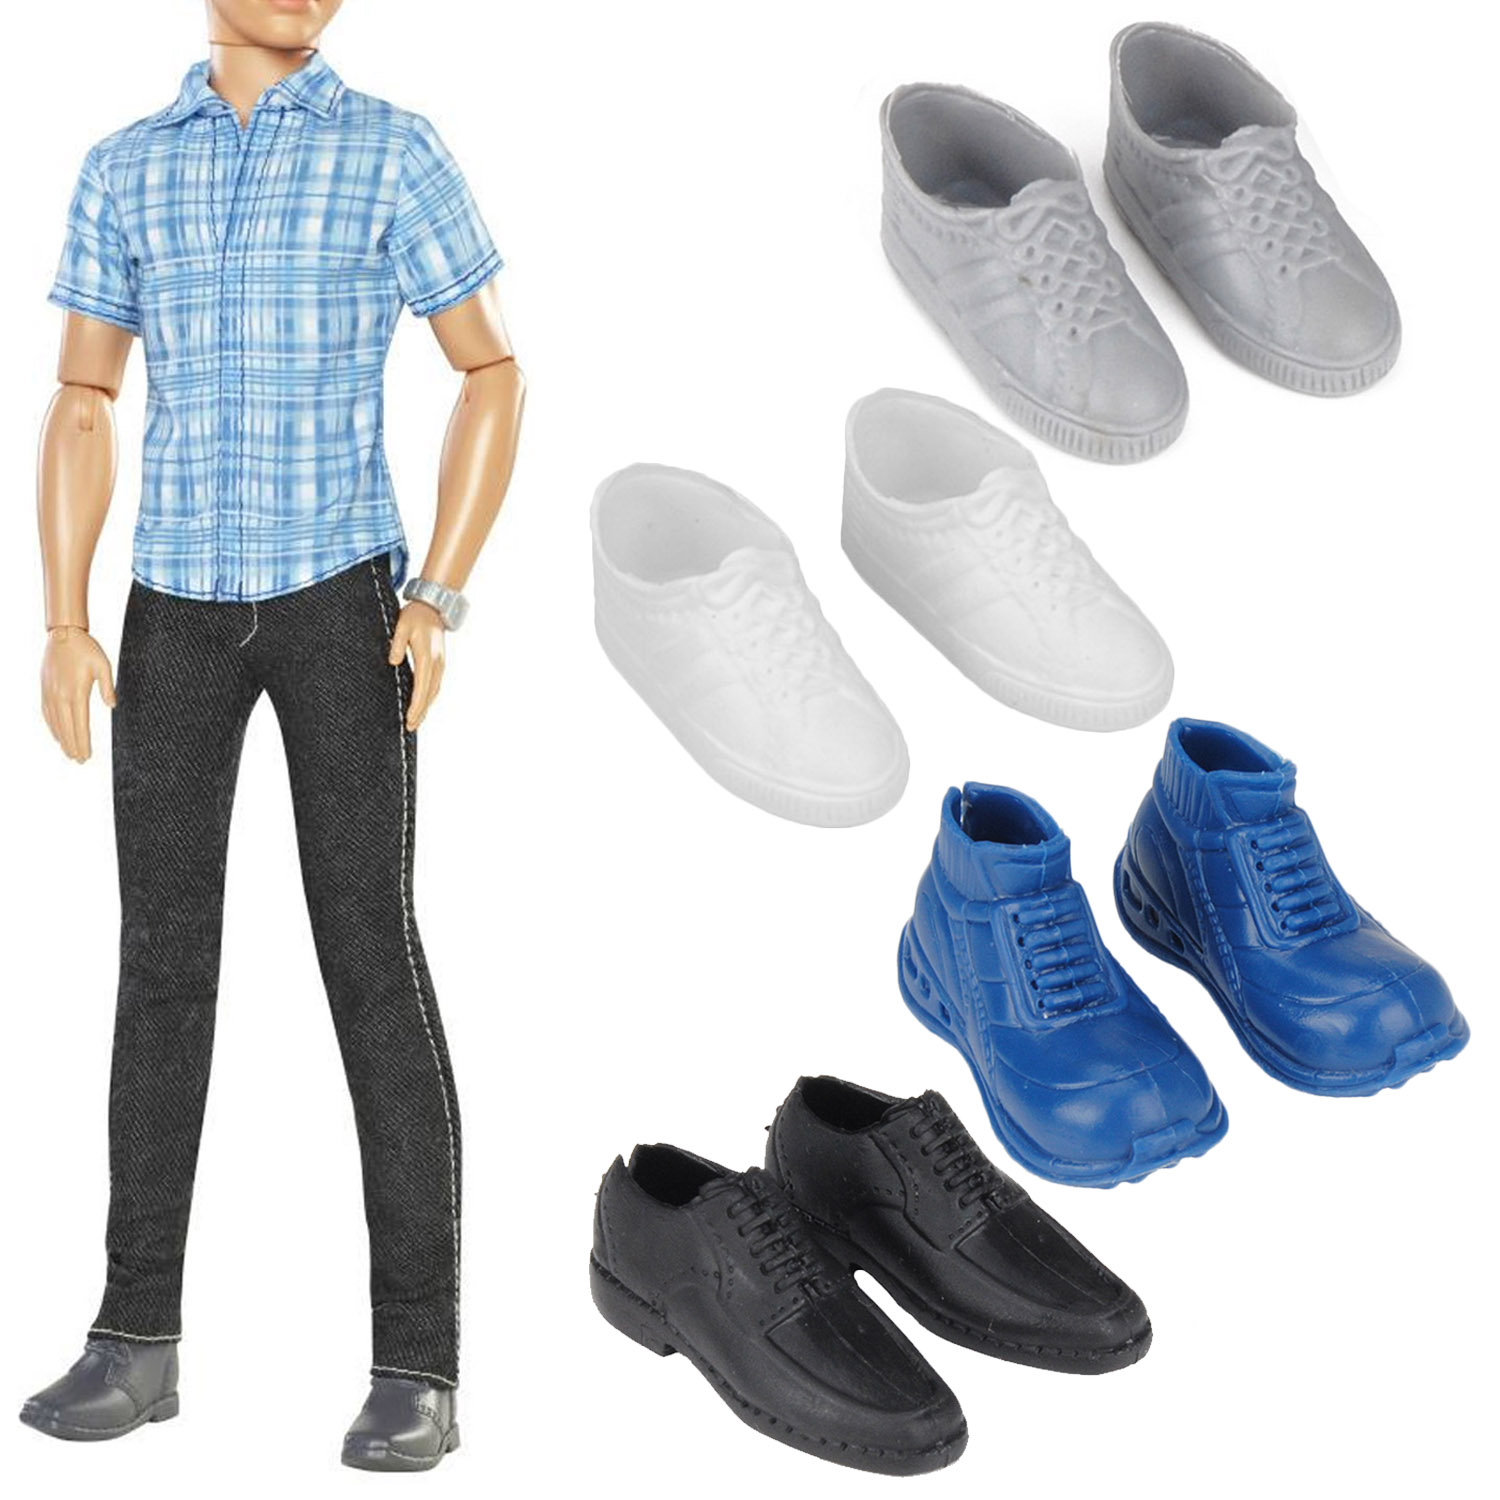 Besegad 4 Pairs Simulation Mini Ken Shoes Dolls Accessories For Barbie Ken Dolls Accessories Kids Girls Christmas Birthday Gifts